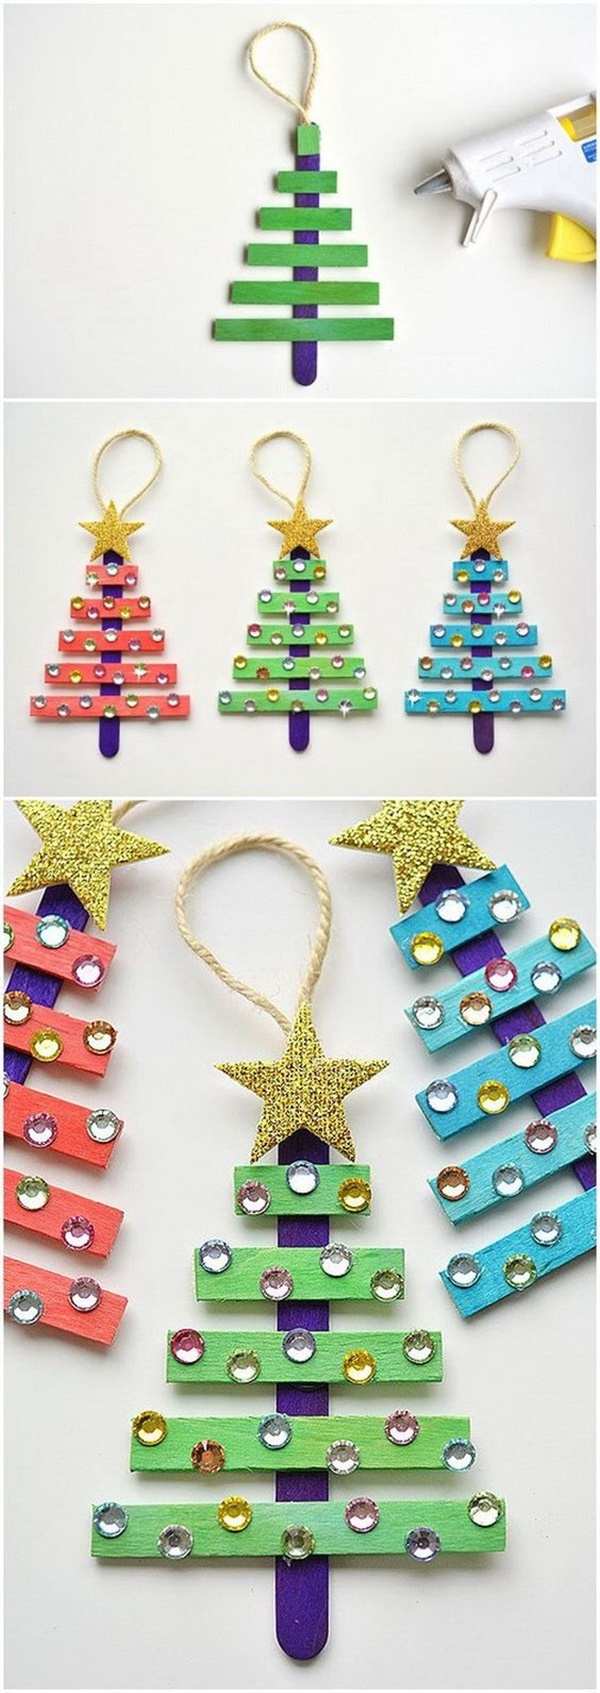 21 Simple Diy Christmas Tree Craft Ideas For Kids To Decorate Tree Tm